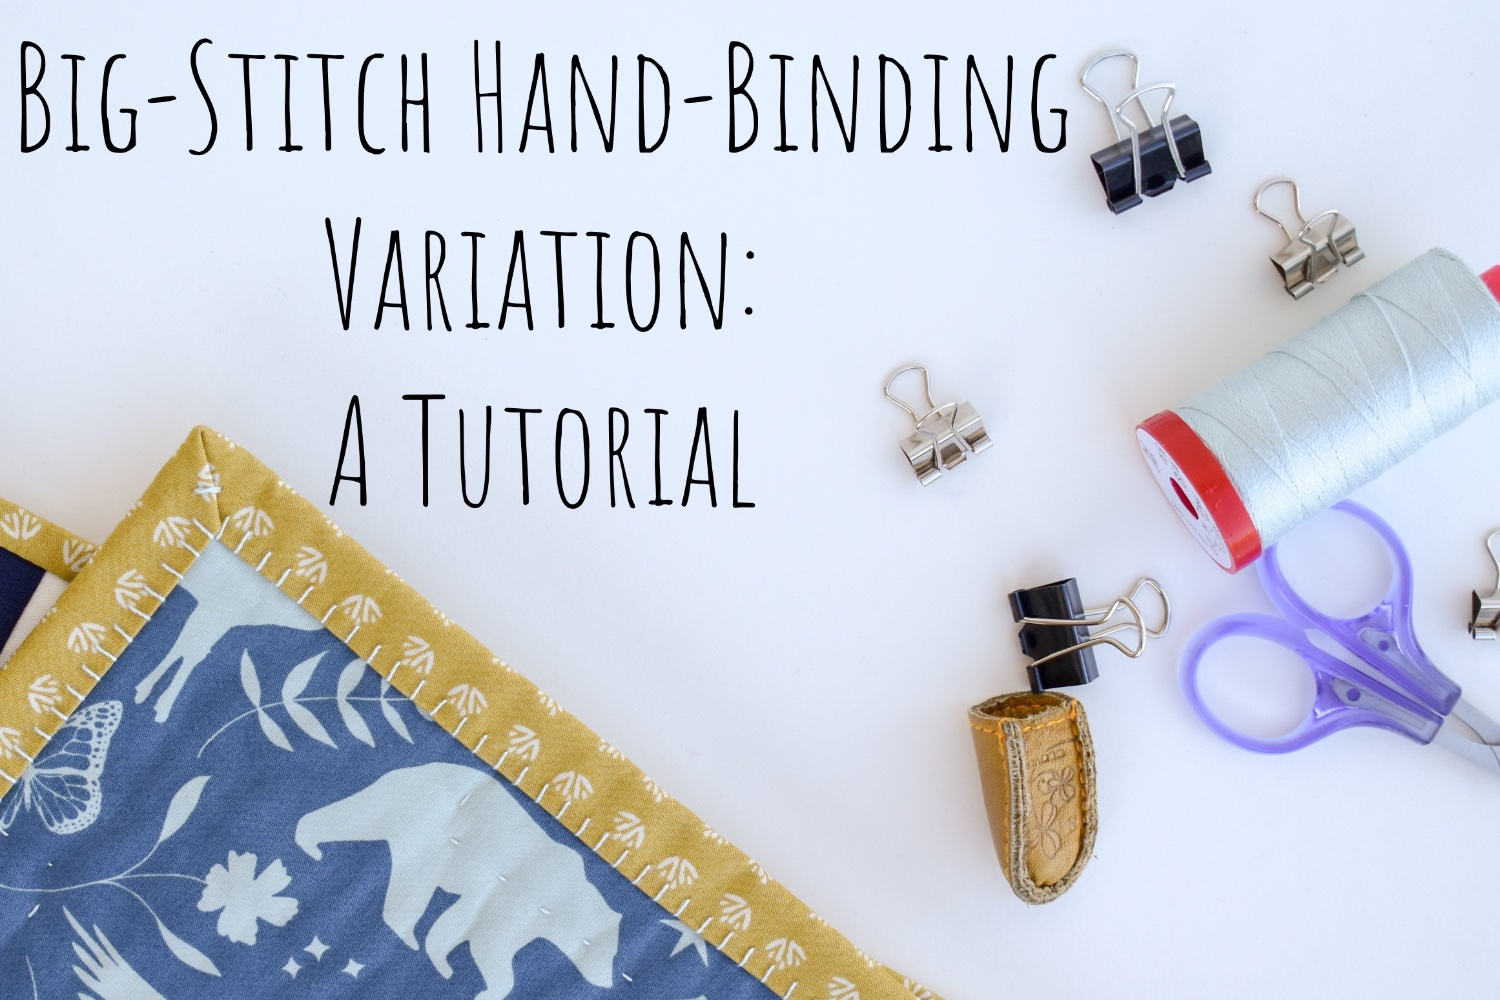 Big-Stitch Hand-Binding Variation | A Tutorial